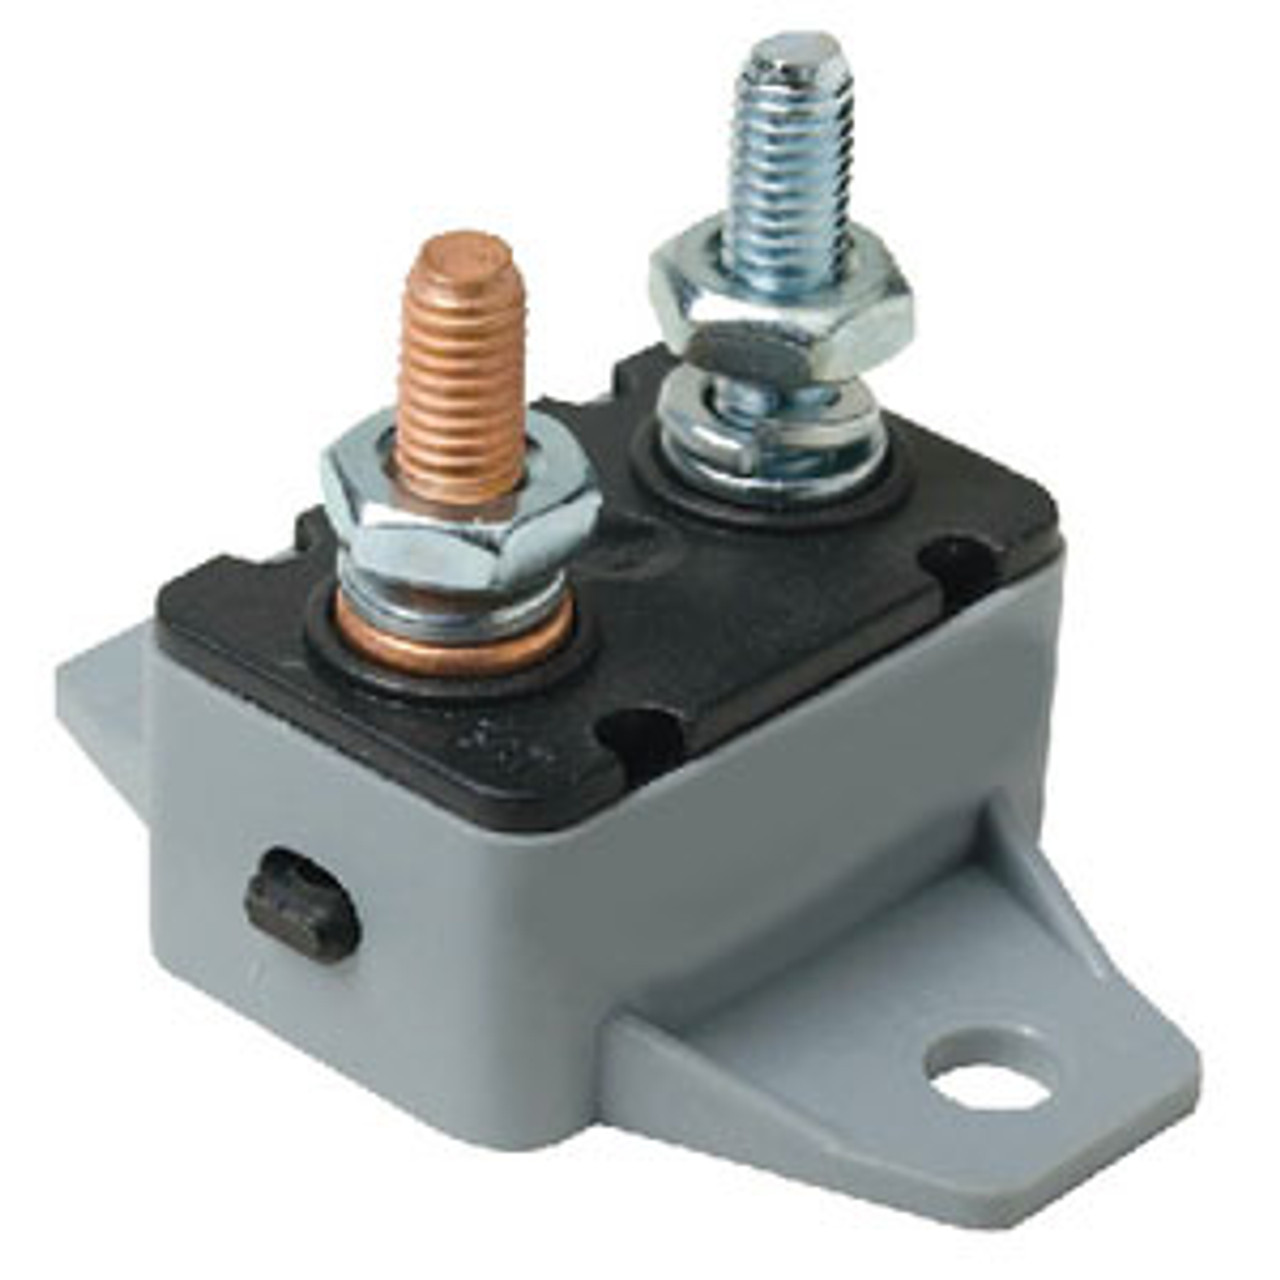 seachoice 50a manual reset breaker 50-13081